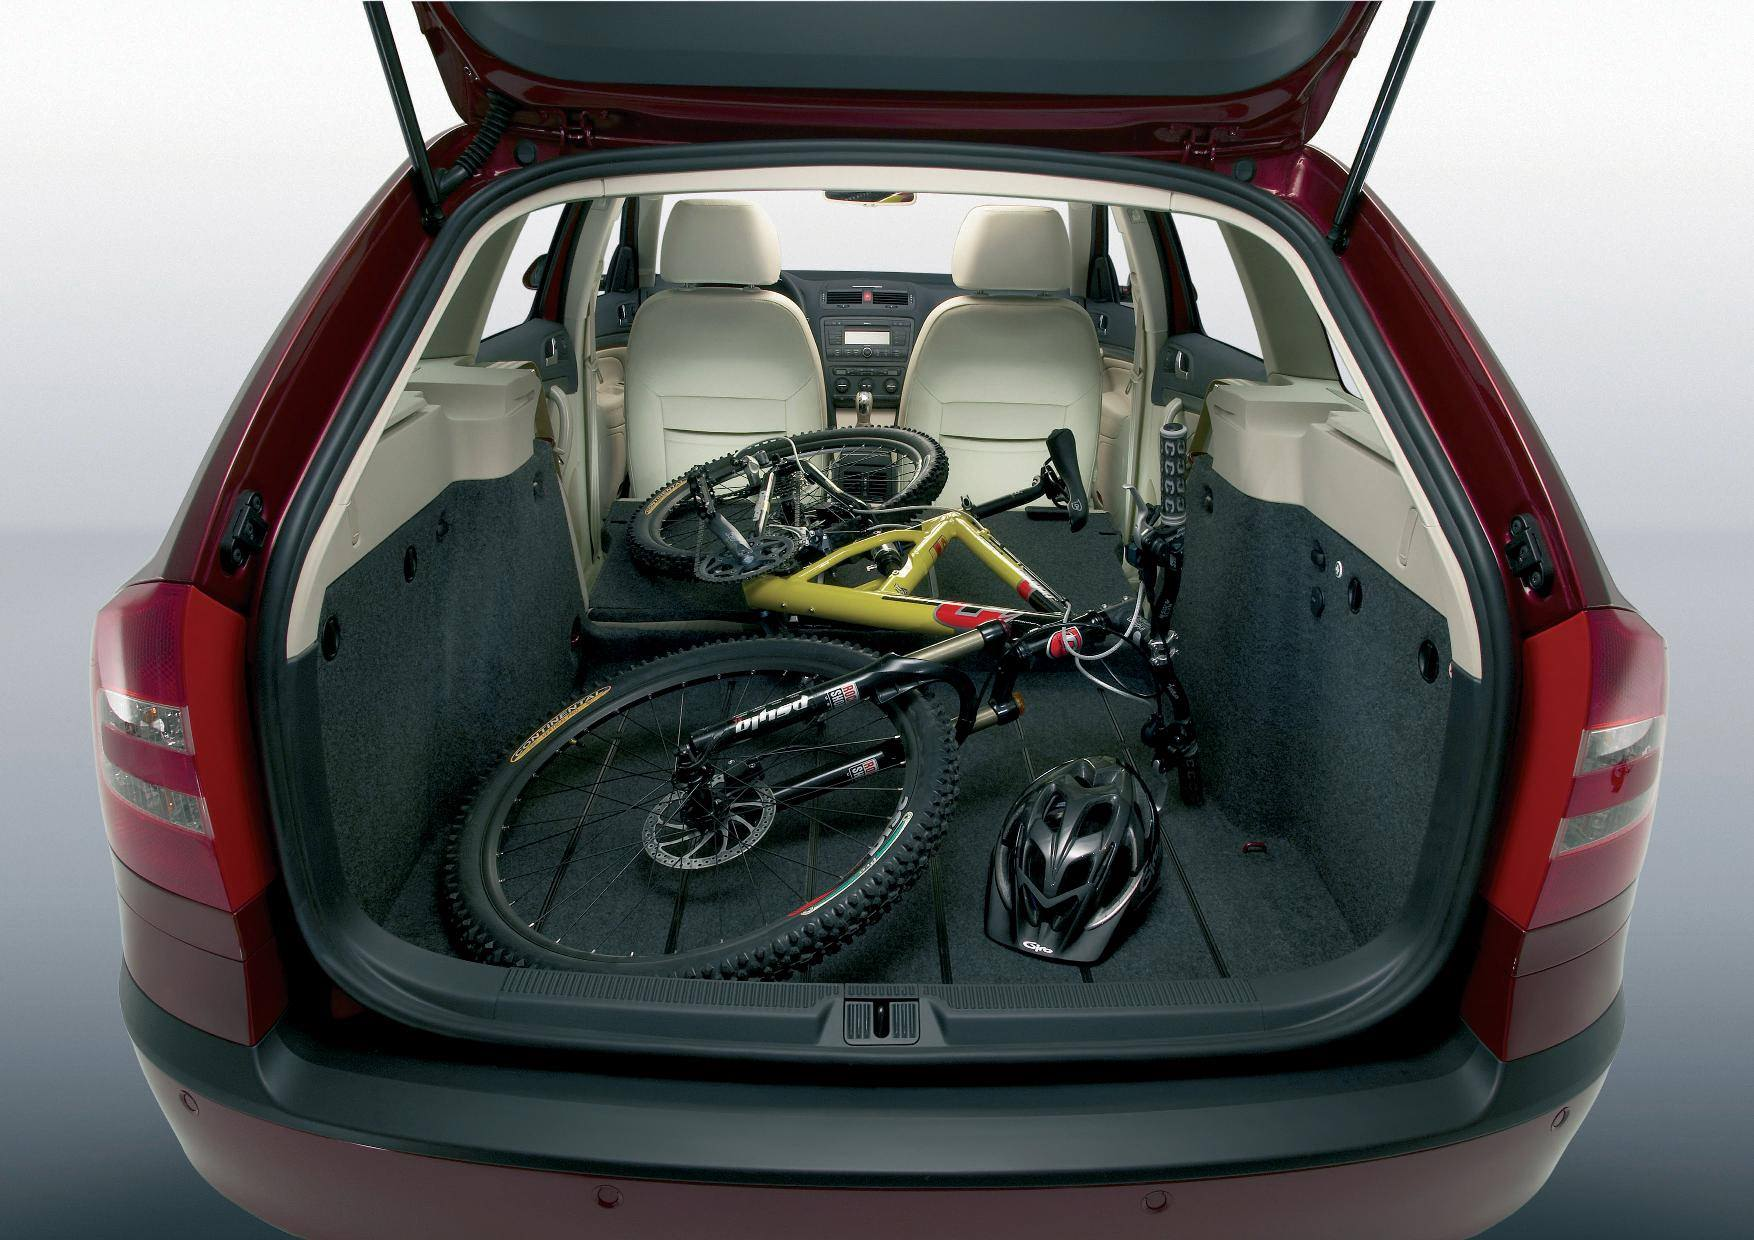 image of a red skoda octavia estate car with a bike in the boot